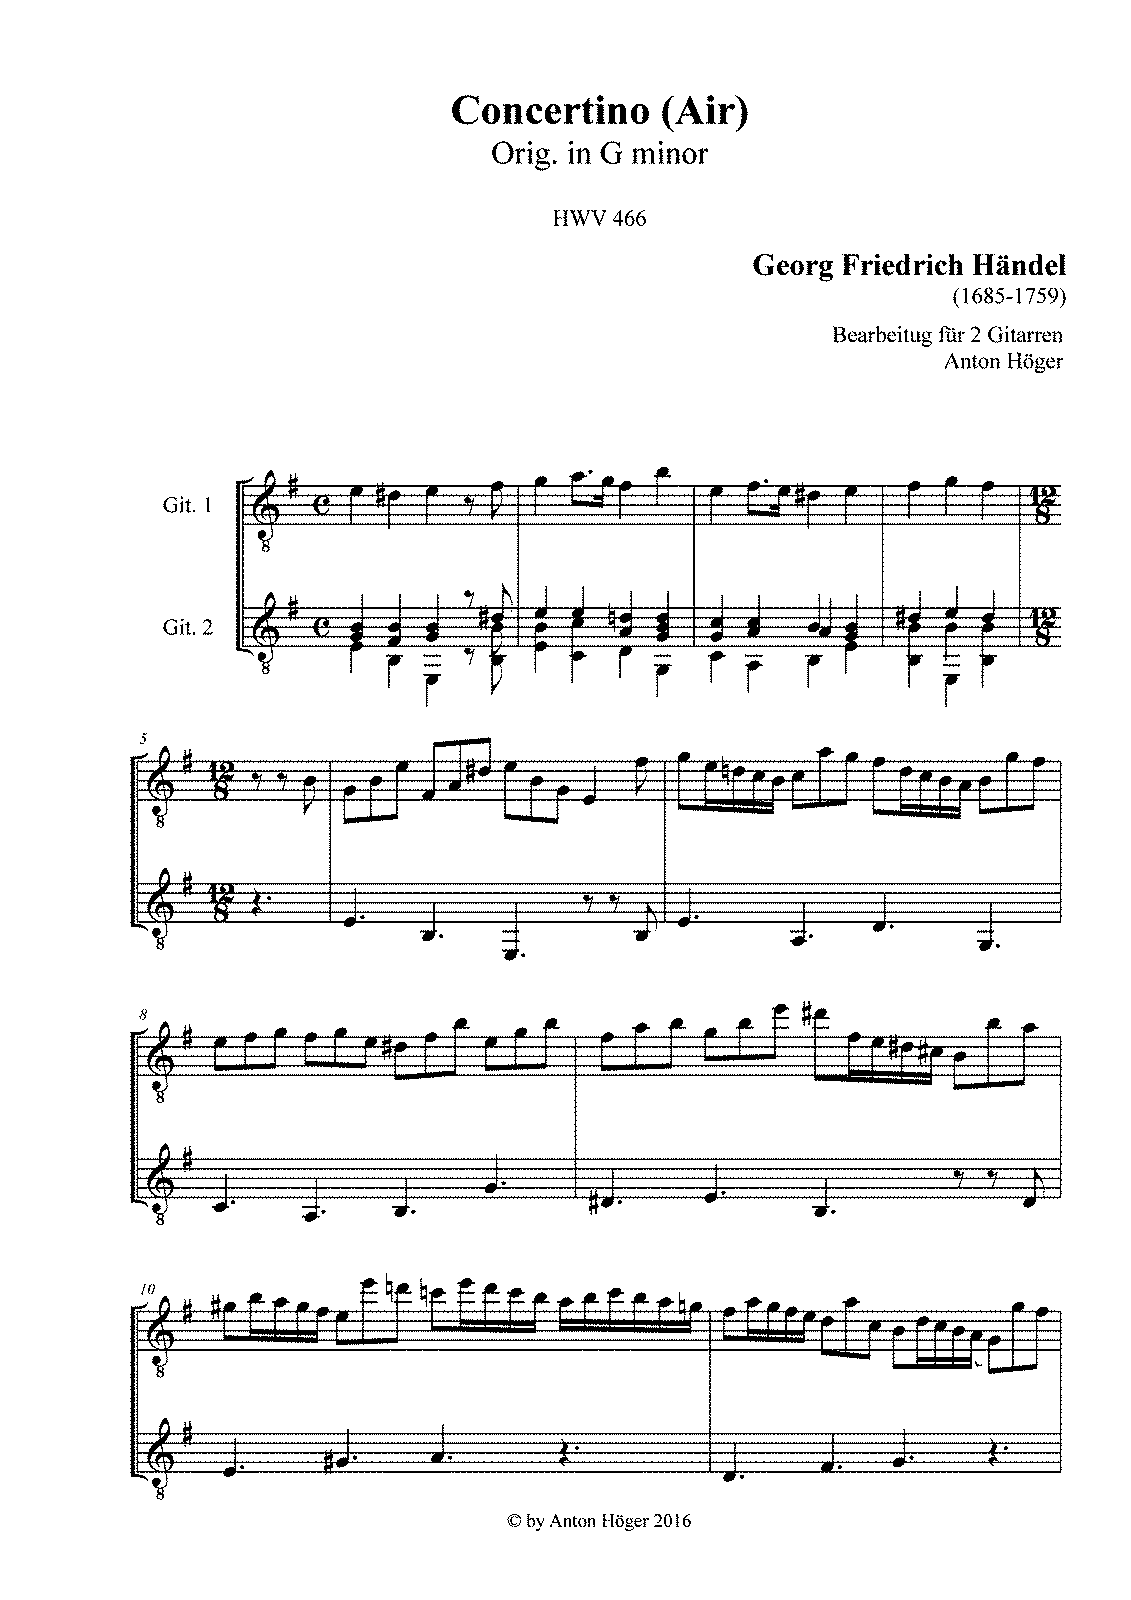 PMLP480814-Händel, Georg Friedrich - Air in G minor, HWV 466.pdf